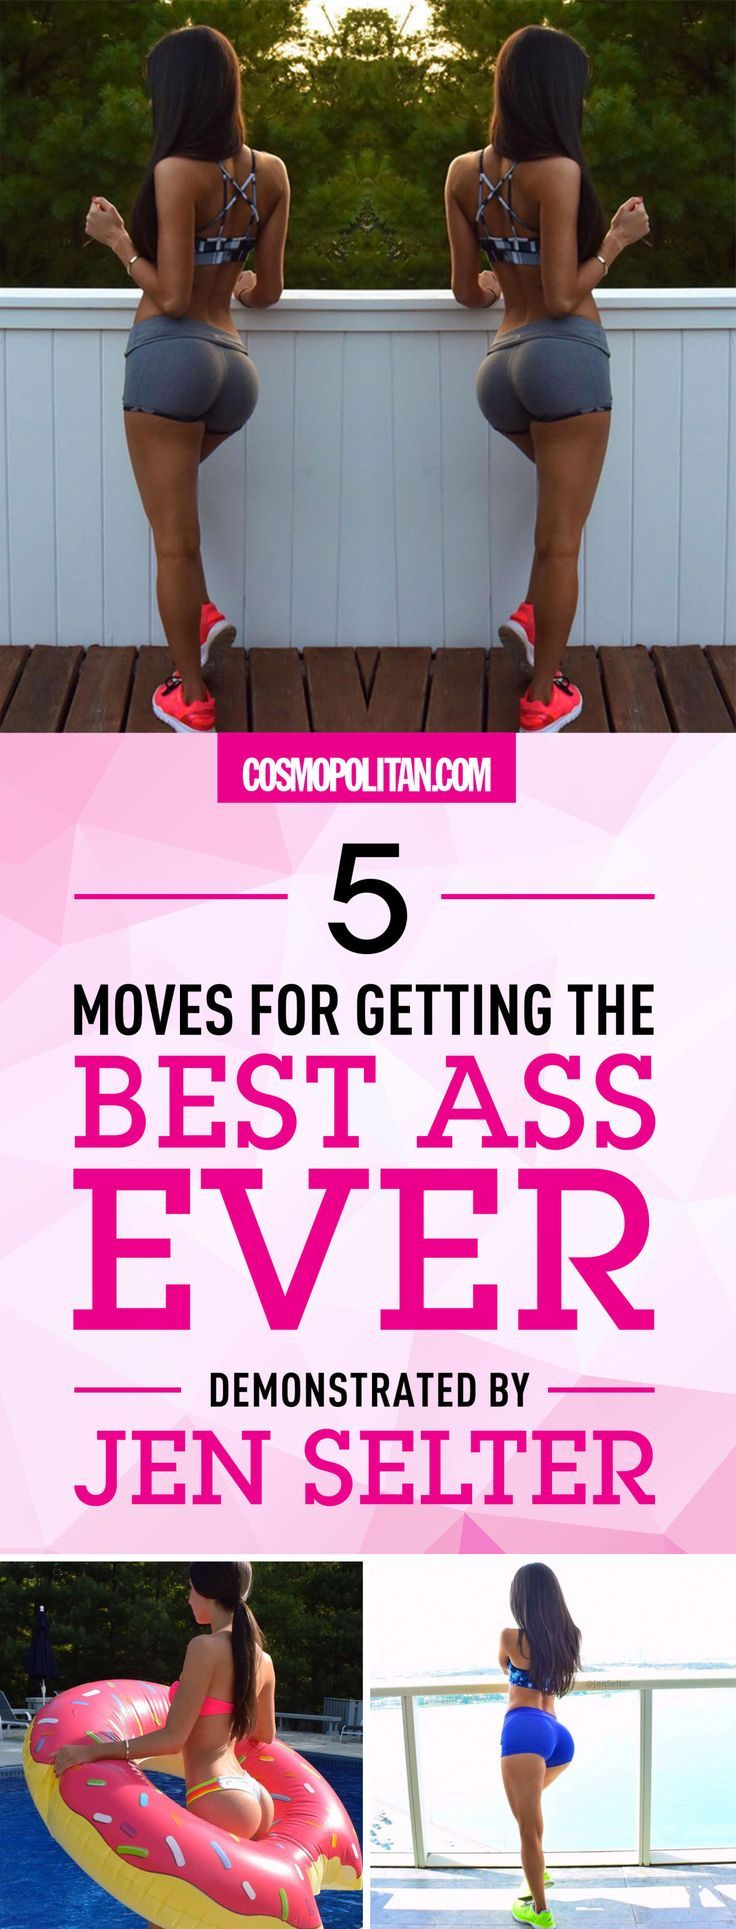 Use these 5 moves — donkey kicks, doggy hydrant, chair kicks, squat pulse, and squat kick — to get an ass like the Instagram famous, Jen Selter. Click through for the expert tips and instructions from Jen Setler herself.